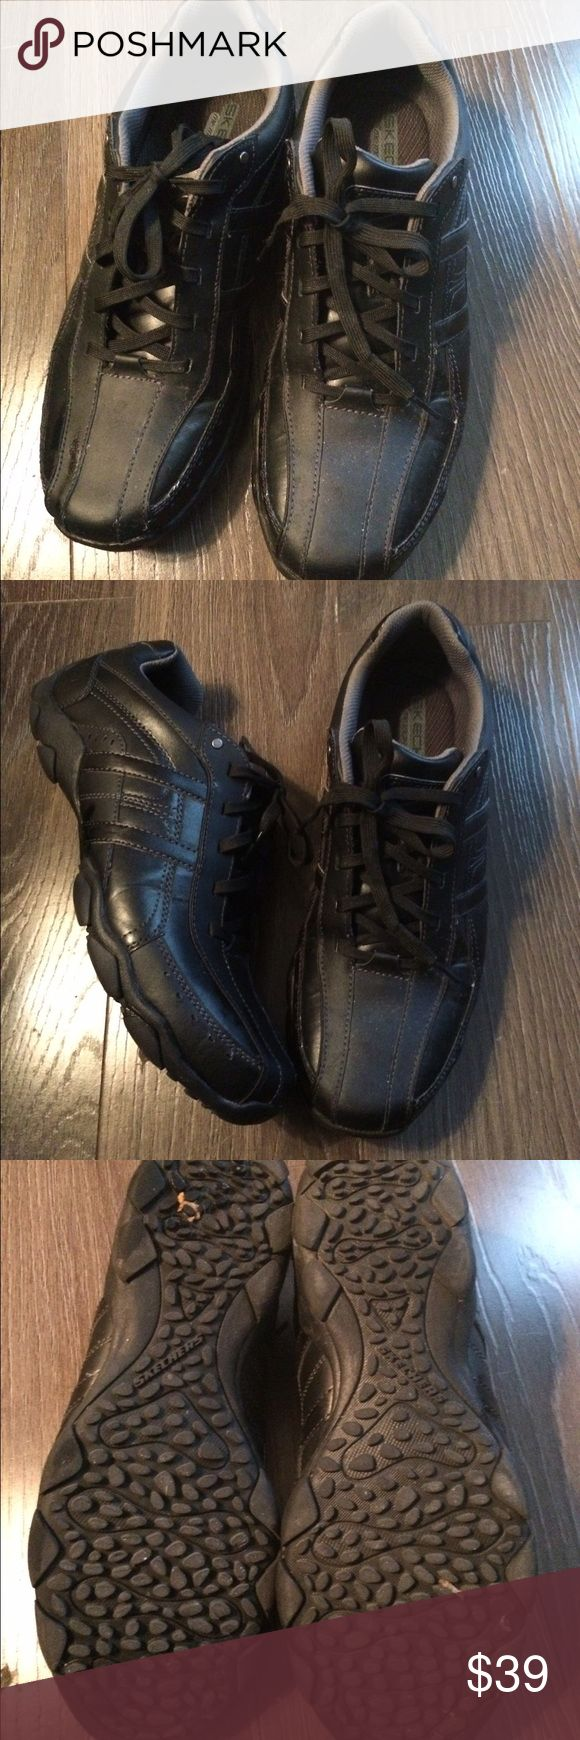 Skechers Leather Men's Tennis Shoes Size 12 black leather only worn once Skechers Shoes Athletic Shoes